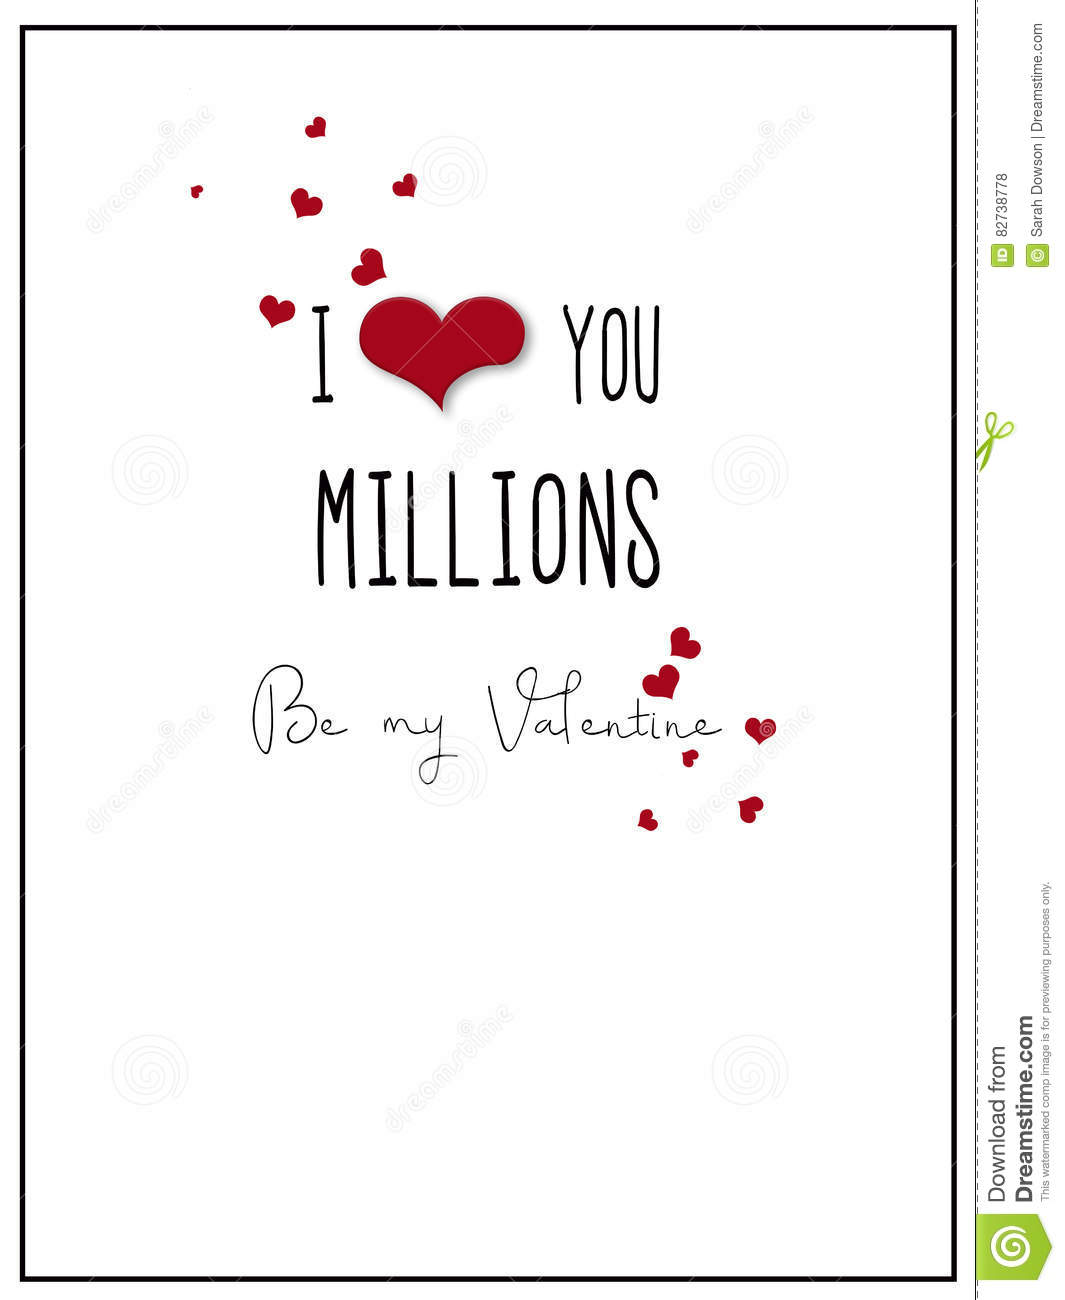 Simple I Love You Millions Valentine Card Illustration – Valentine Card Words